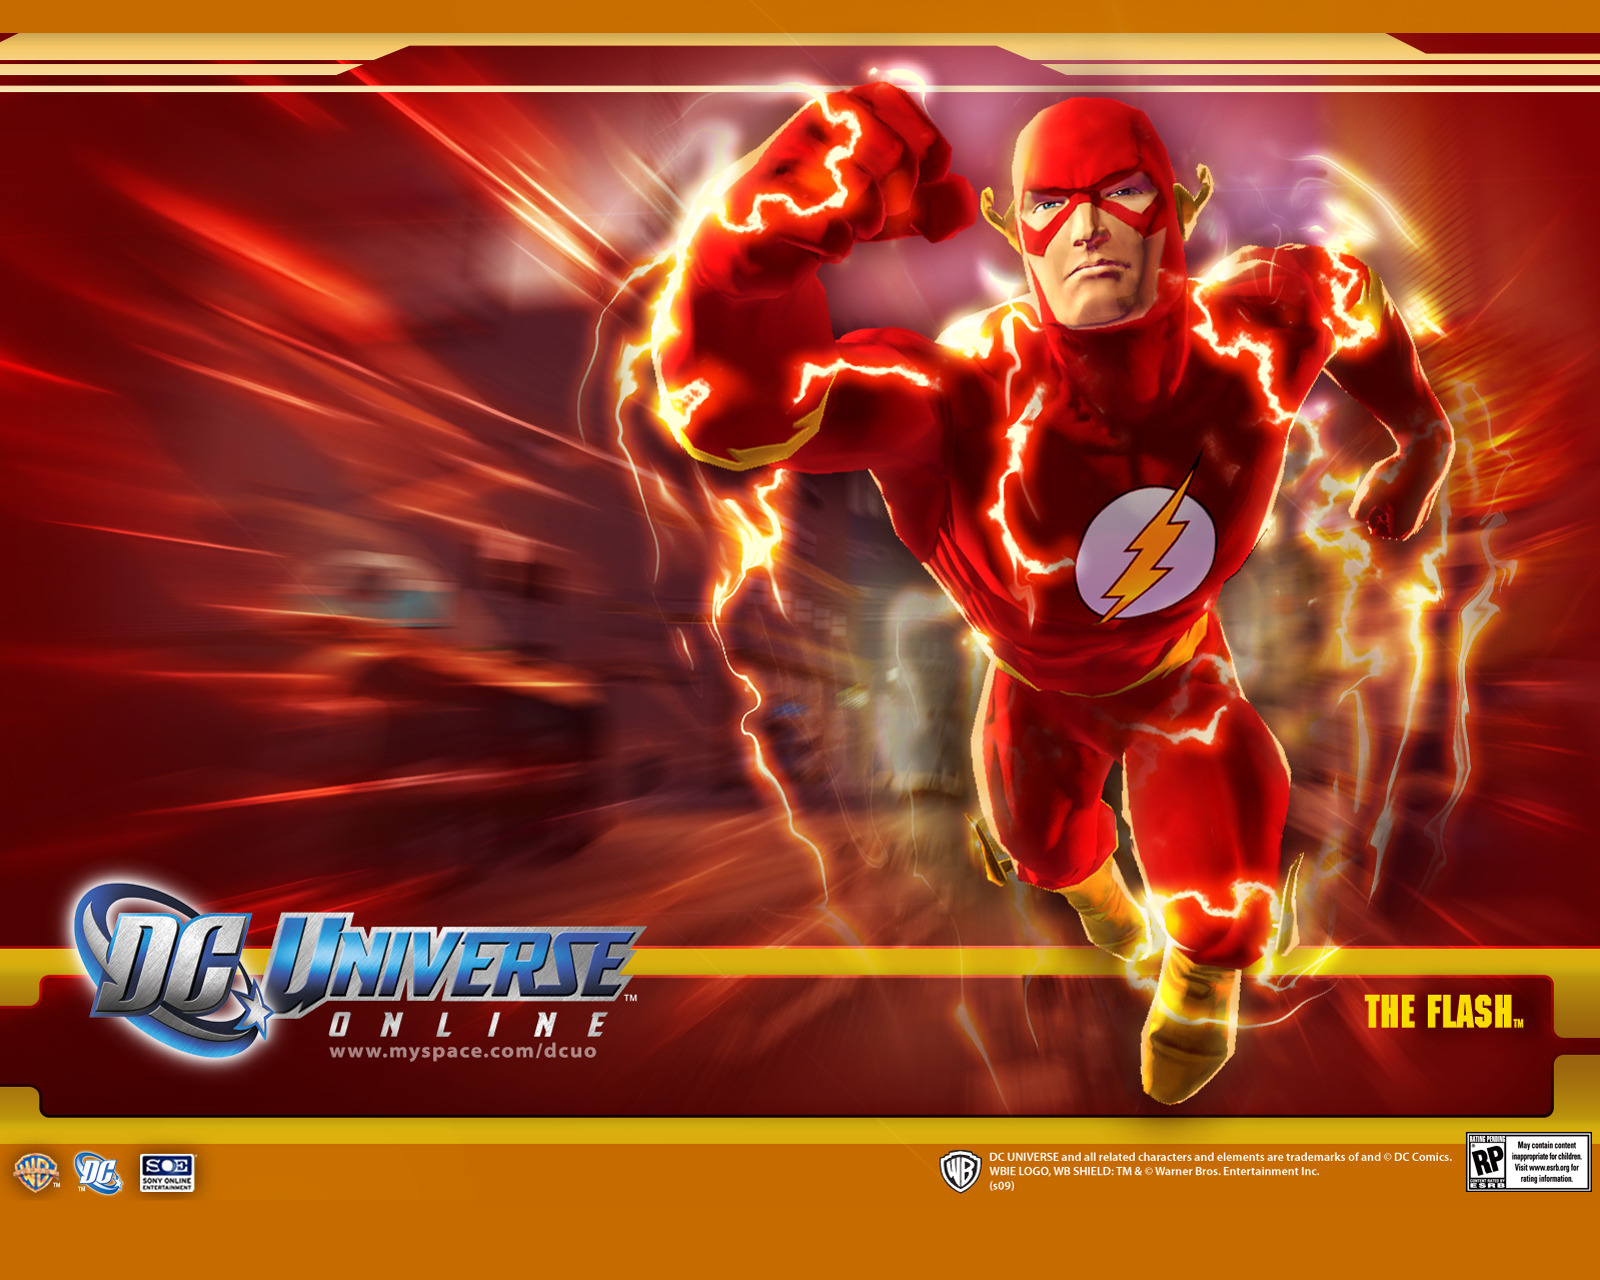 The Flash   DC Universe Online 1600x1280